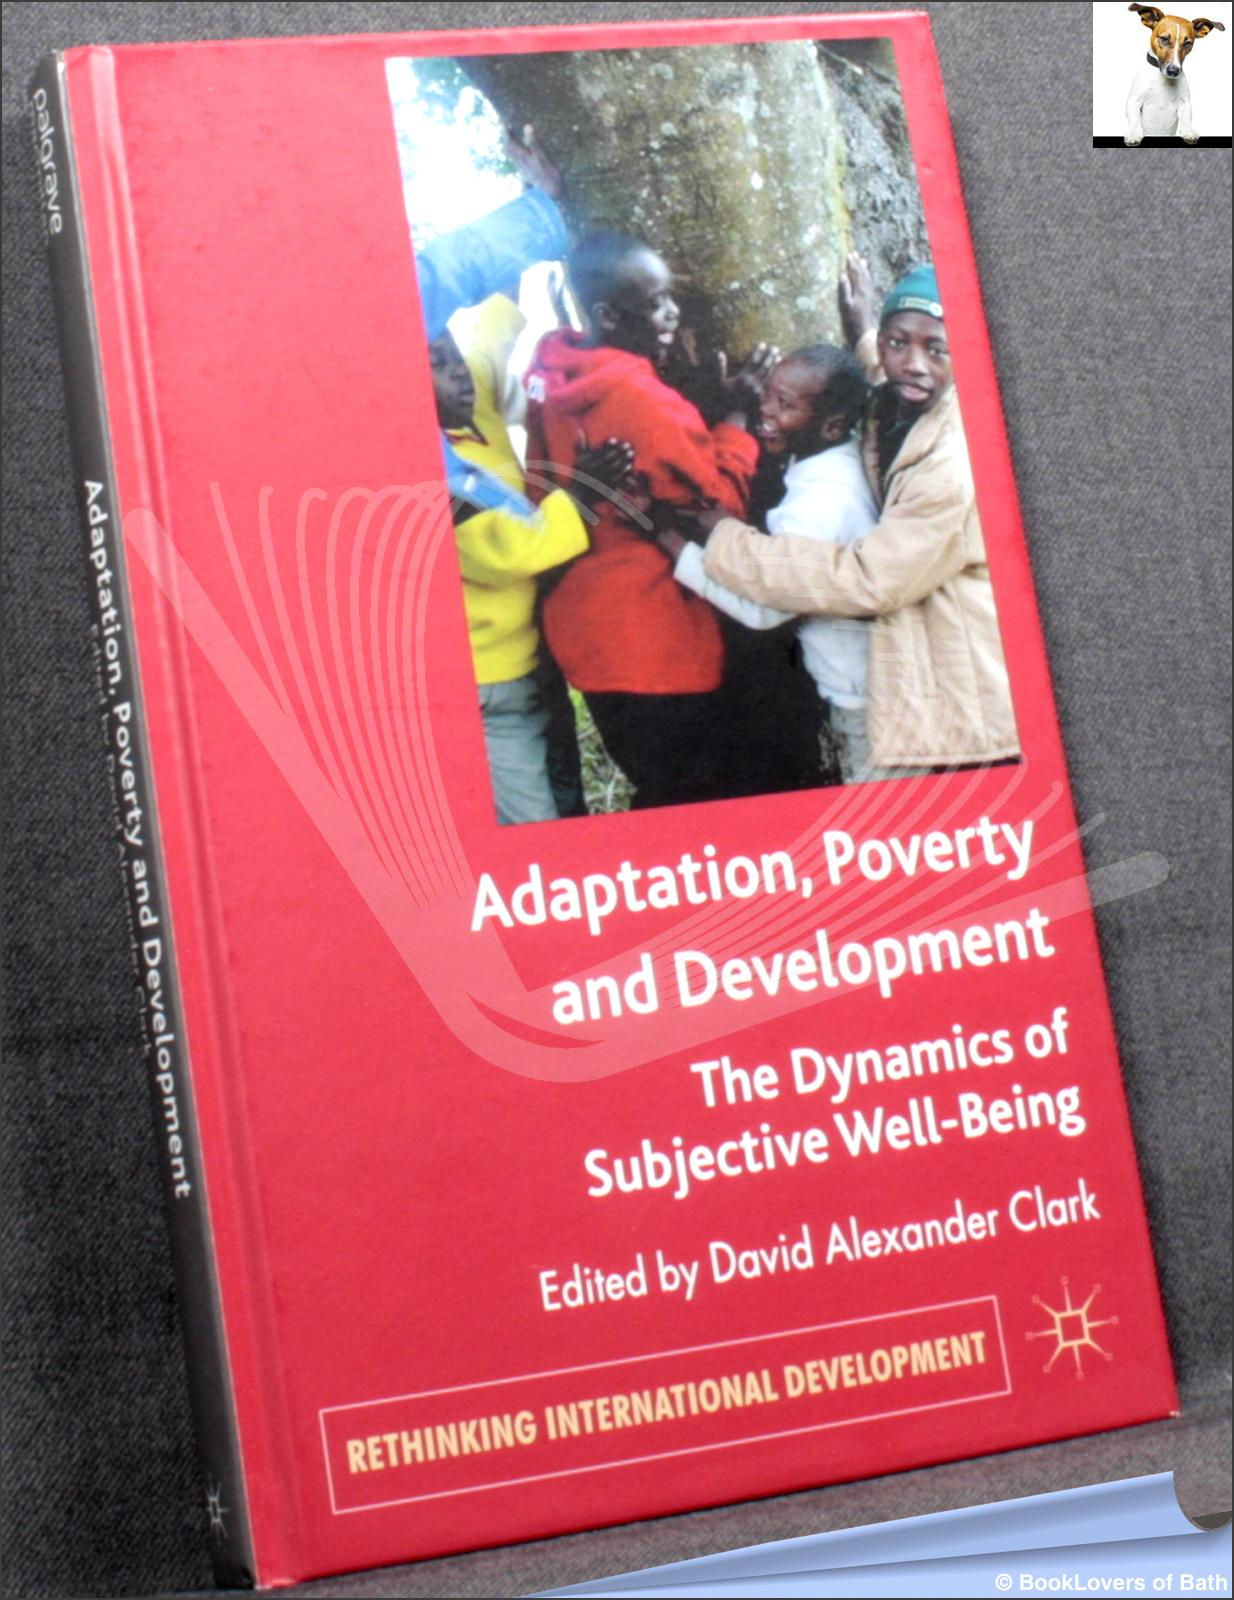 Adaptation, Poverty and Development: The Dynamics of Subjective Well-Being - Edited by David Alexander Clark